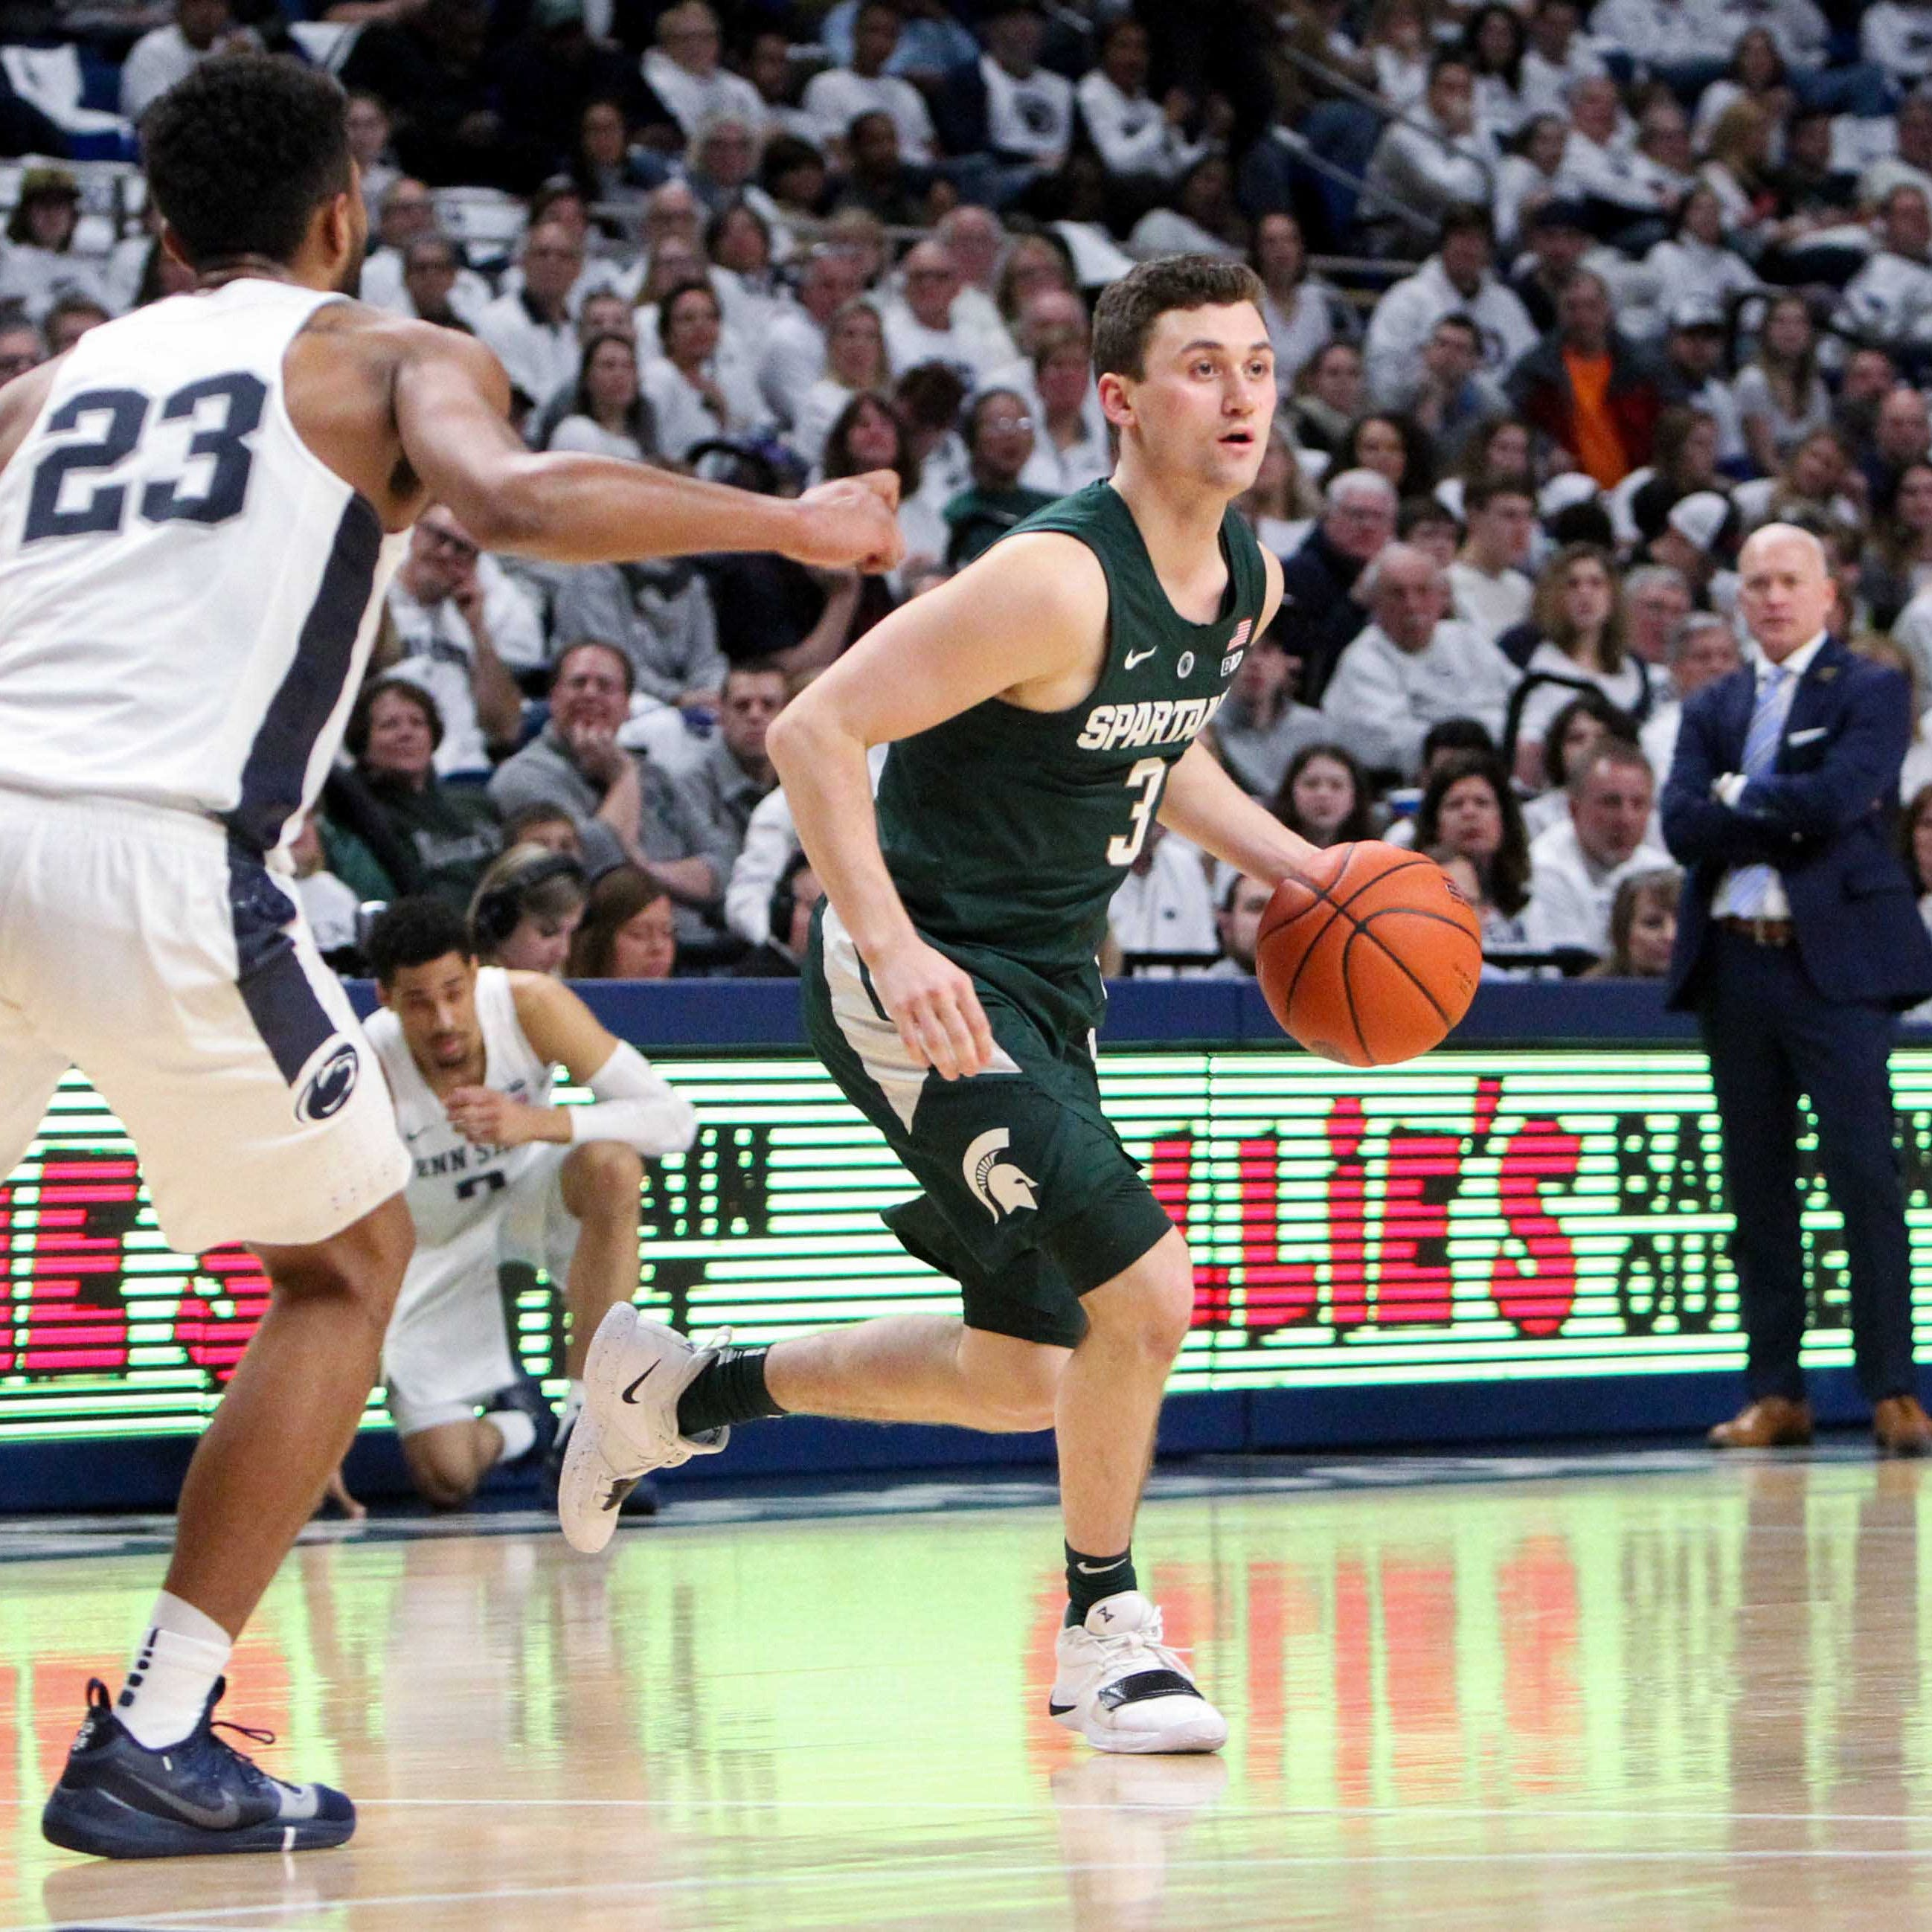 Couch: Michigan State's freshmen find themselves immersed in an ideal situation